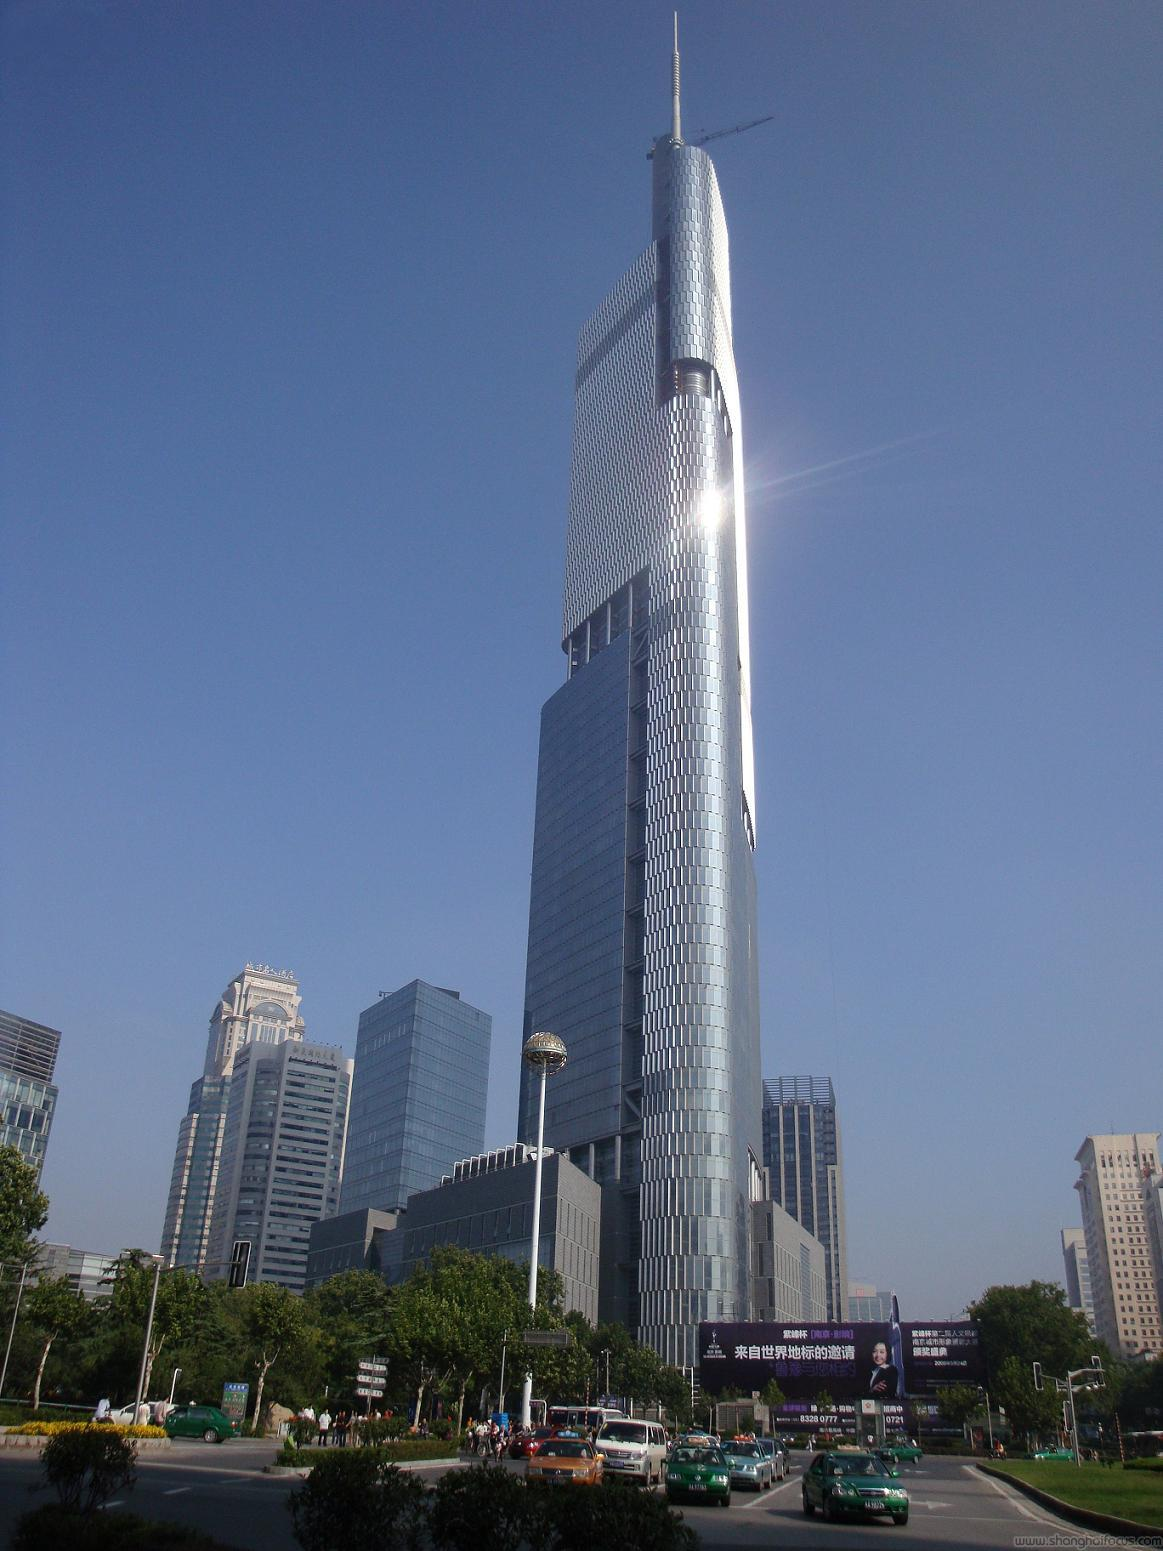 Torre Zifeng Greenland Square Zifeng Tower Centro